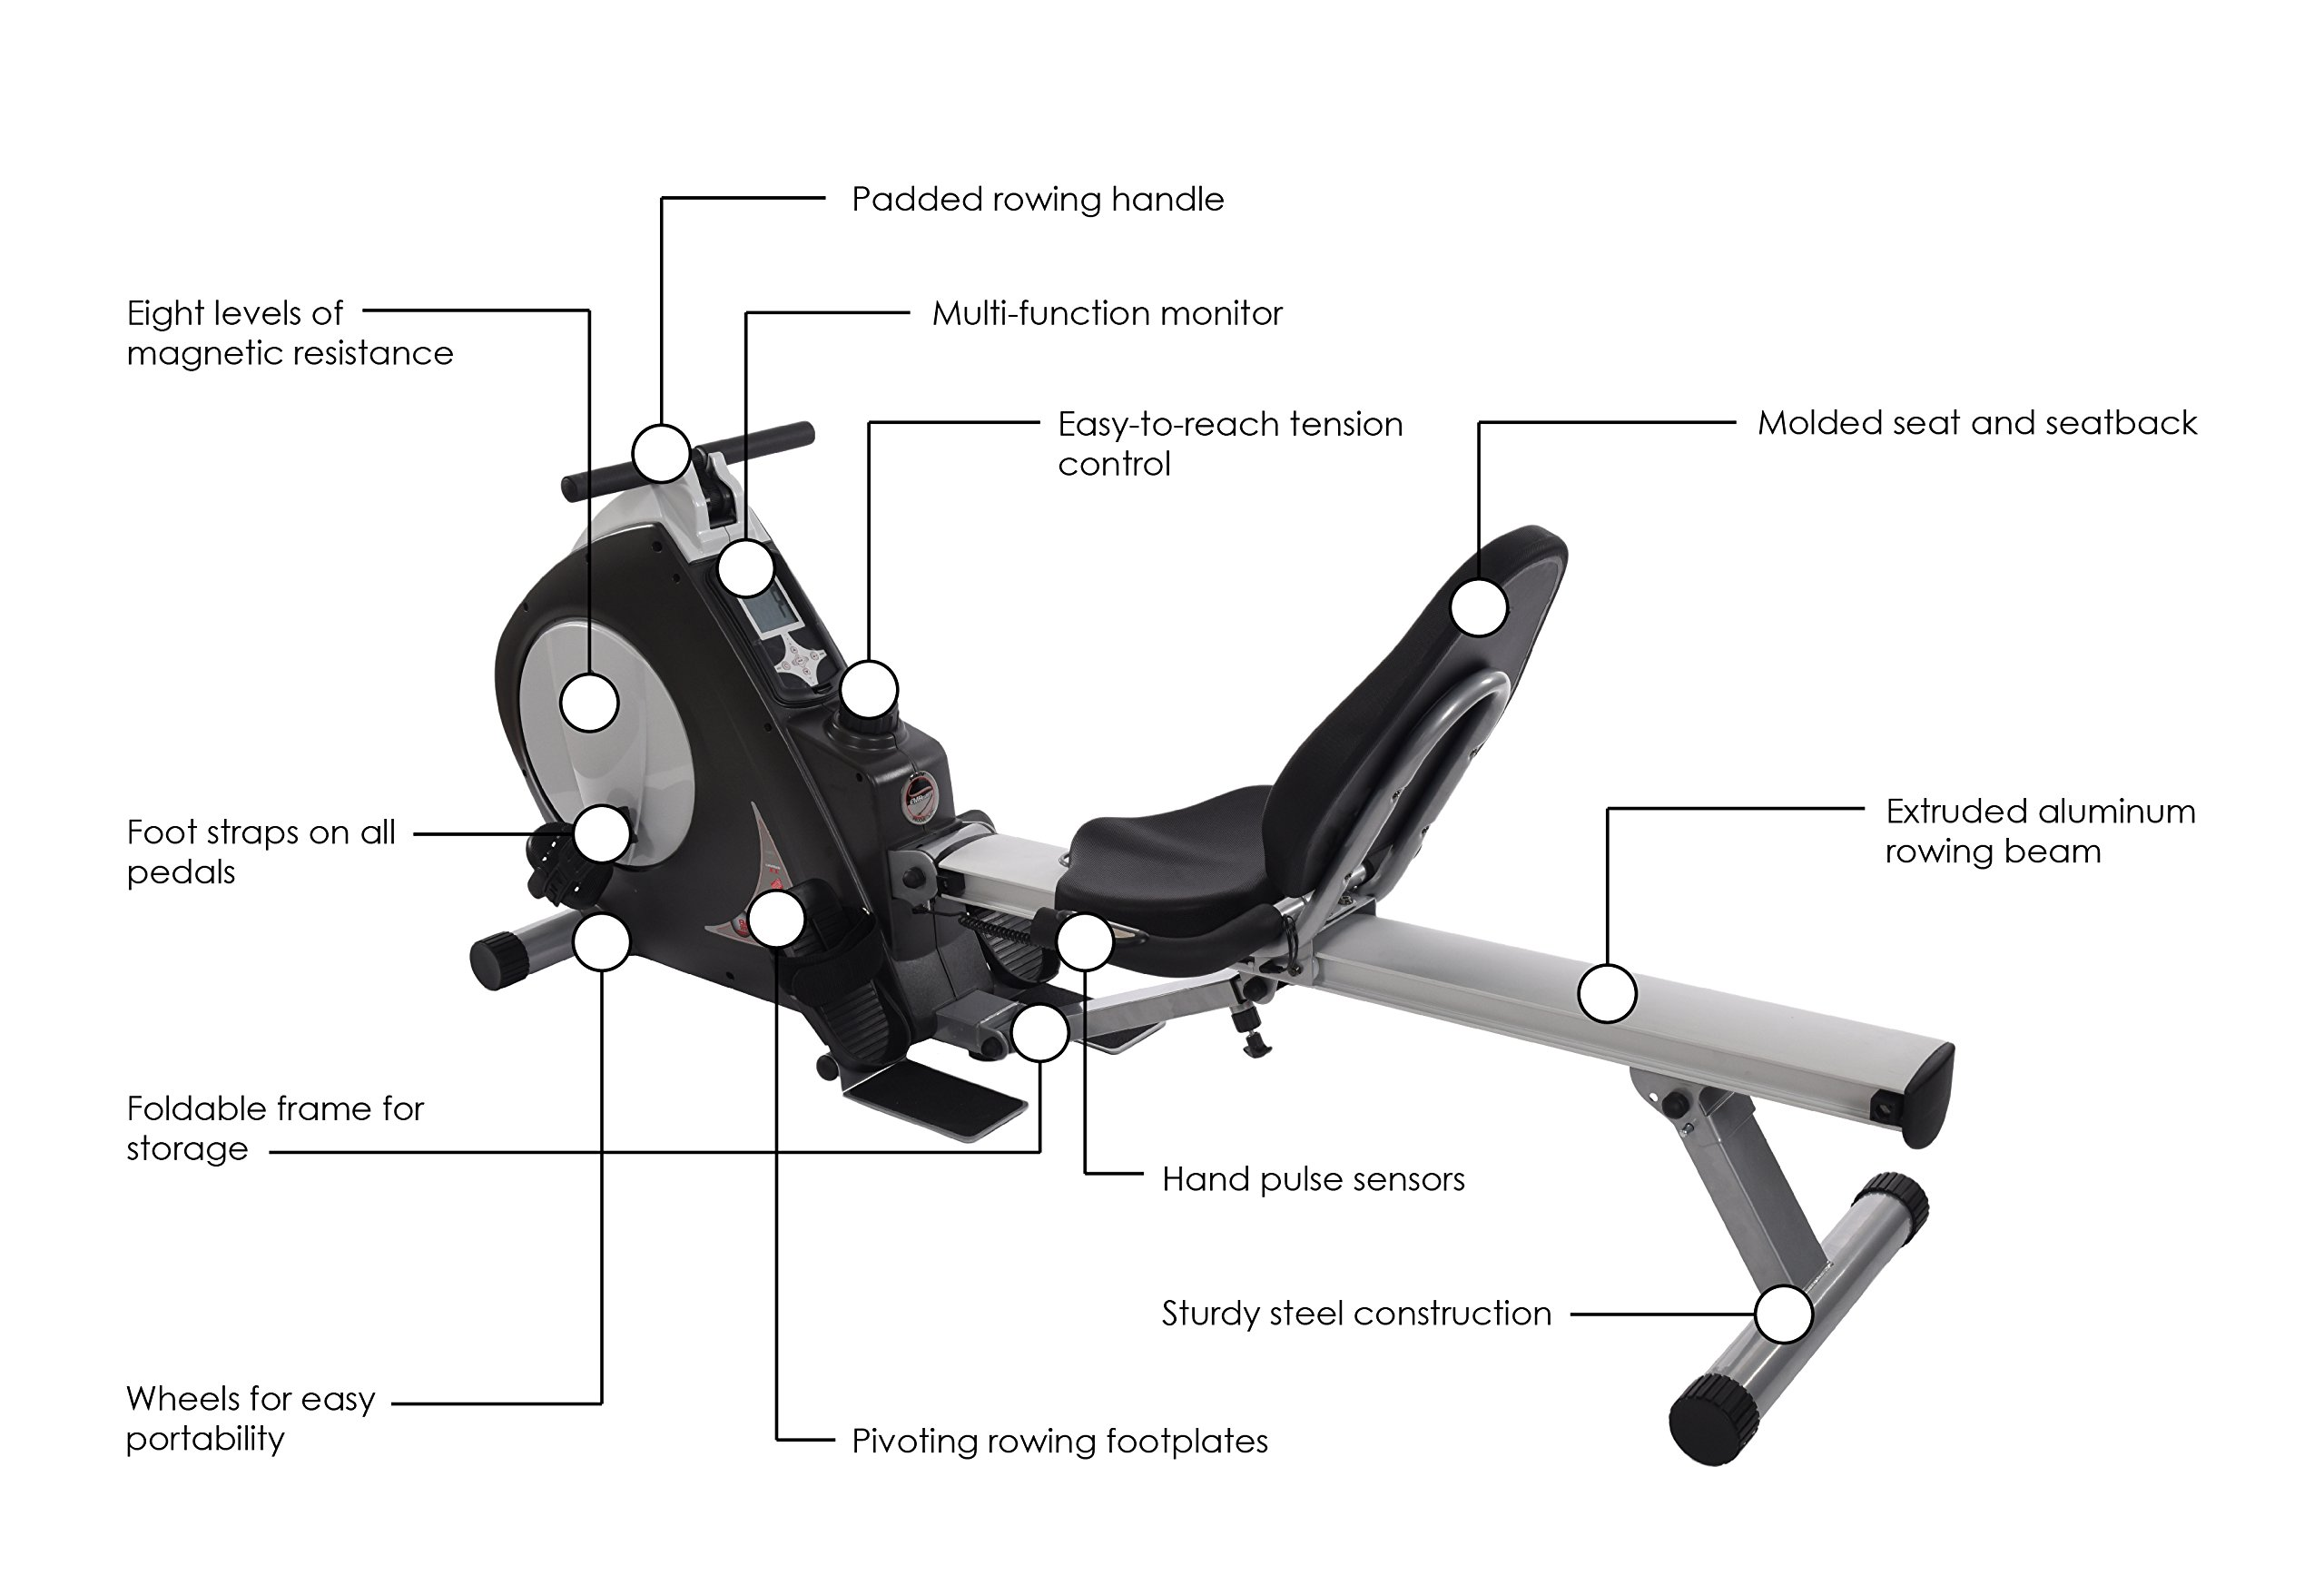 Stamina 15-9003 Deluxe Conversion II Recumbent / Rower by Stamina (Image #2)